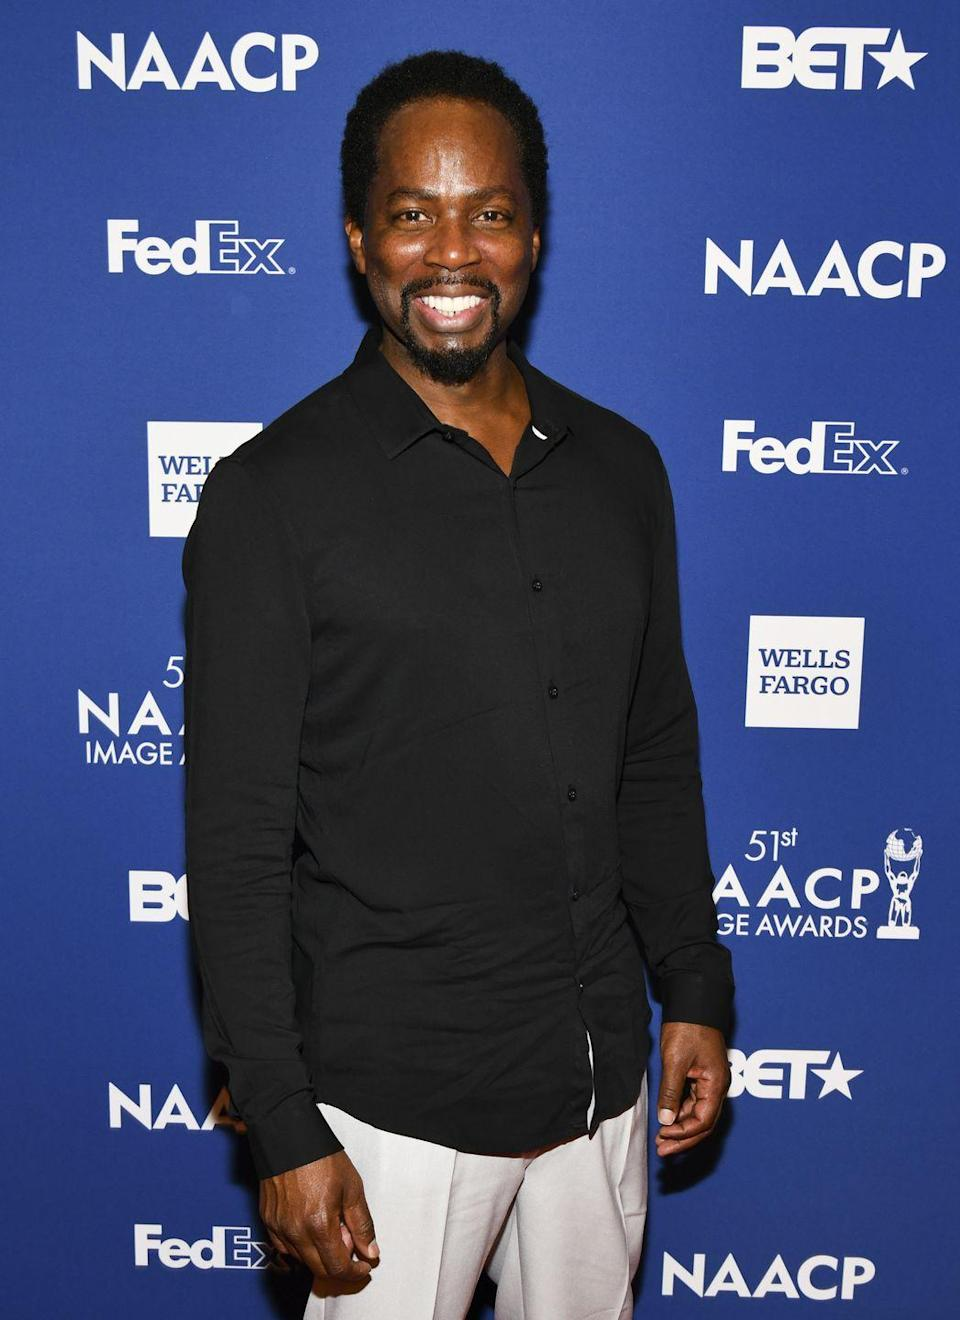 <p>Recently appeared in the Netflix film <em>Dumplin'</em>, as well as a guest spot on <em>The Good Doctor</em> and in a recurring role on the cop drama <em>The Rookie</em>.</p>